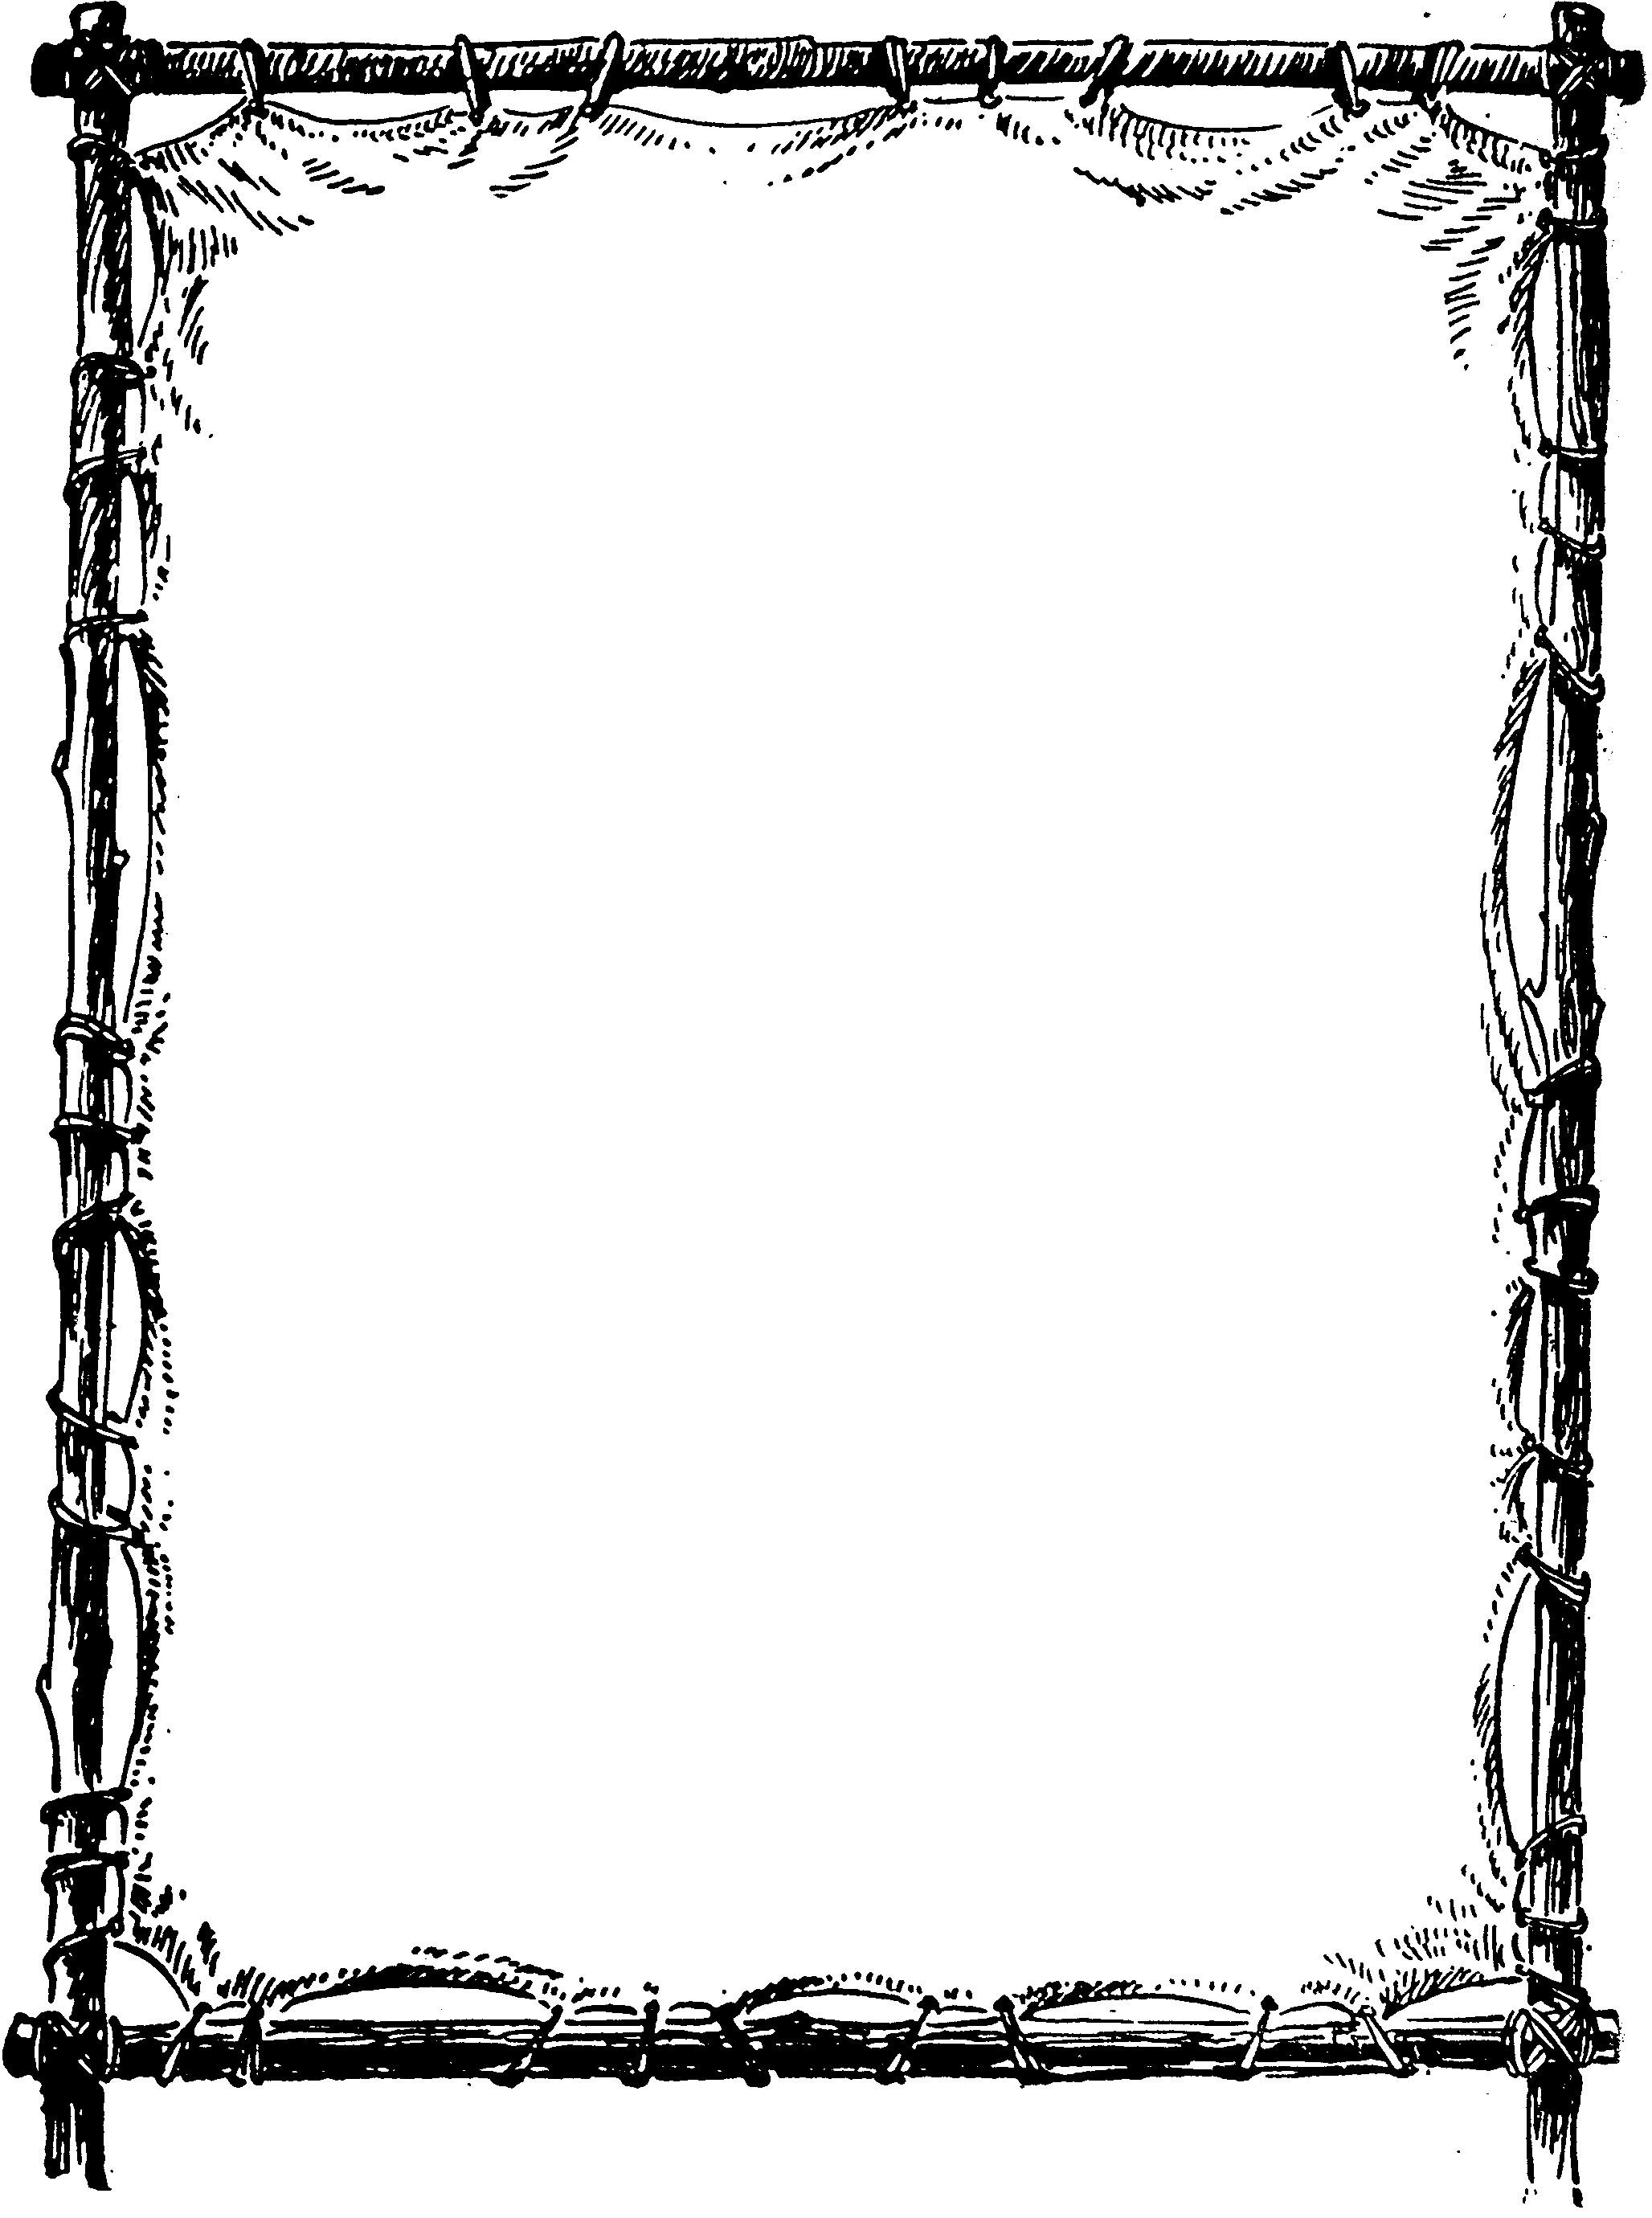 Line art borders clipart free svg free library Microsoft Word; Microsoft Office Clip Art Borders; Formal Page ... svg free library